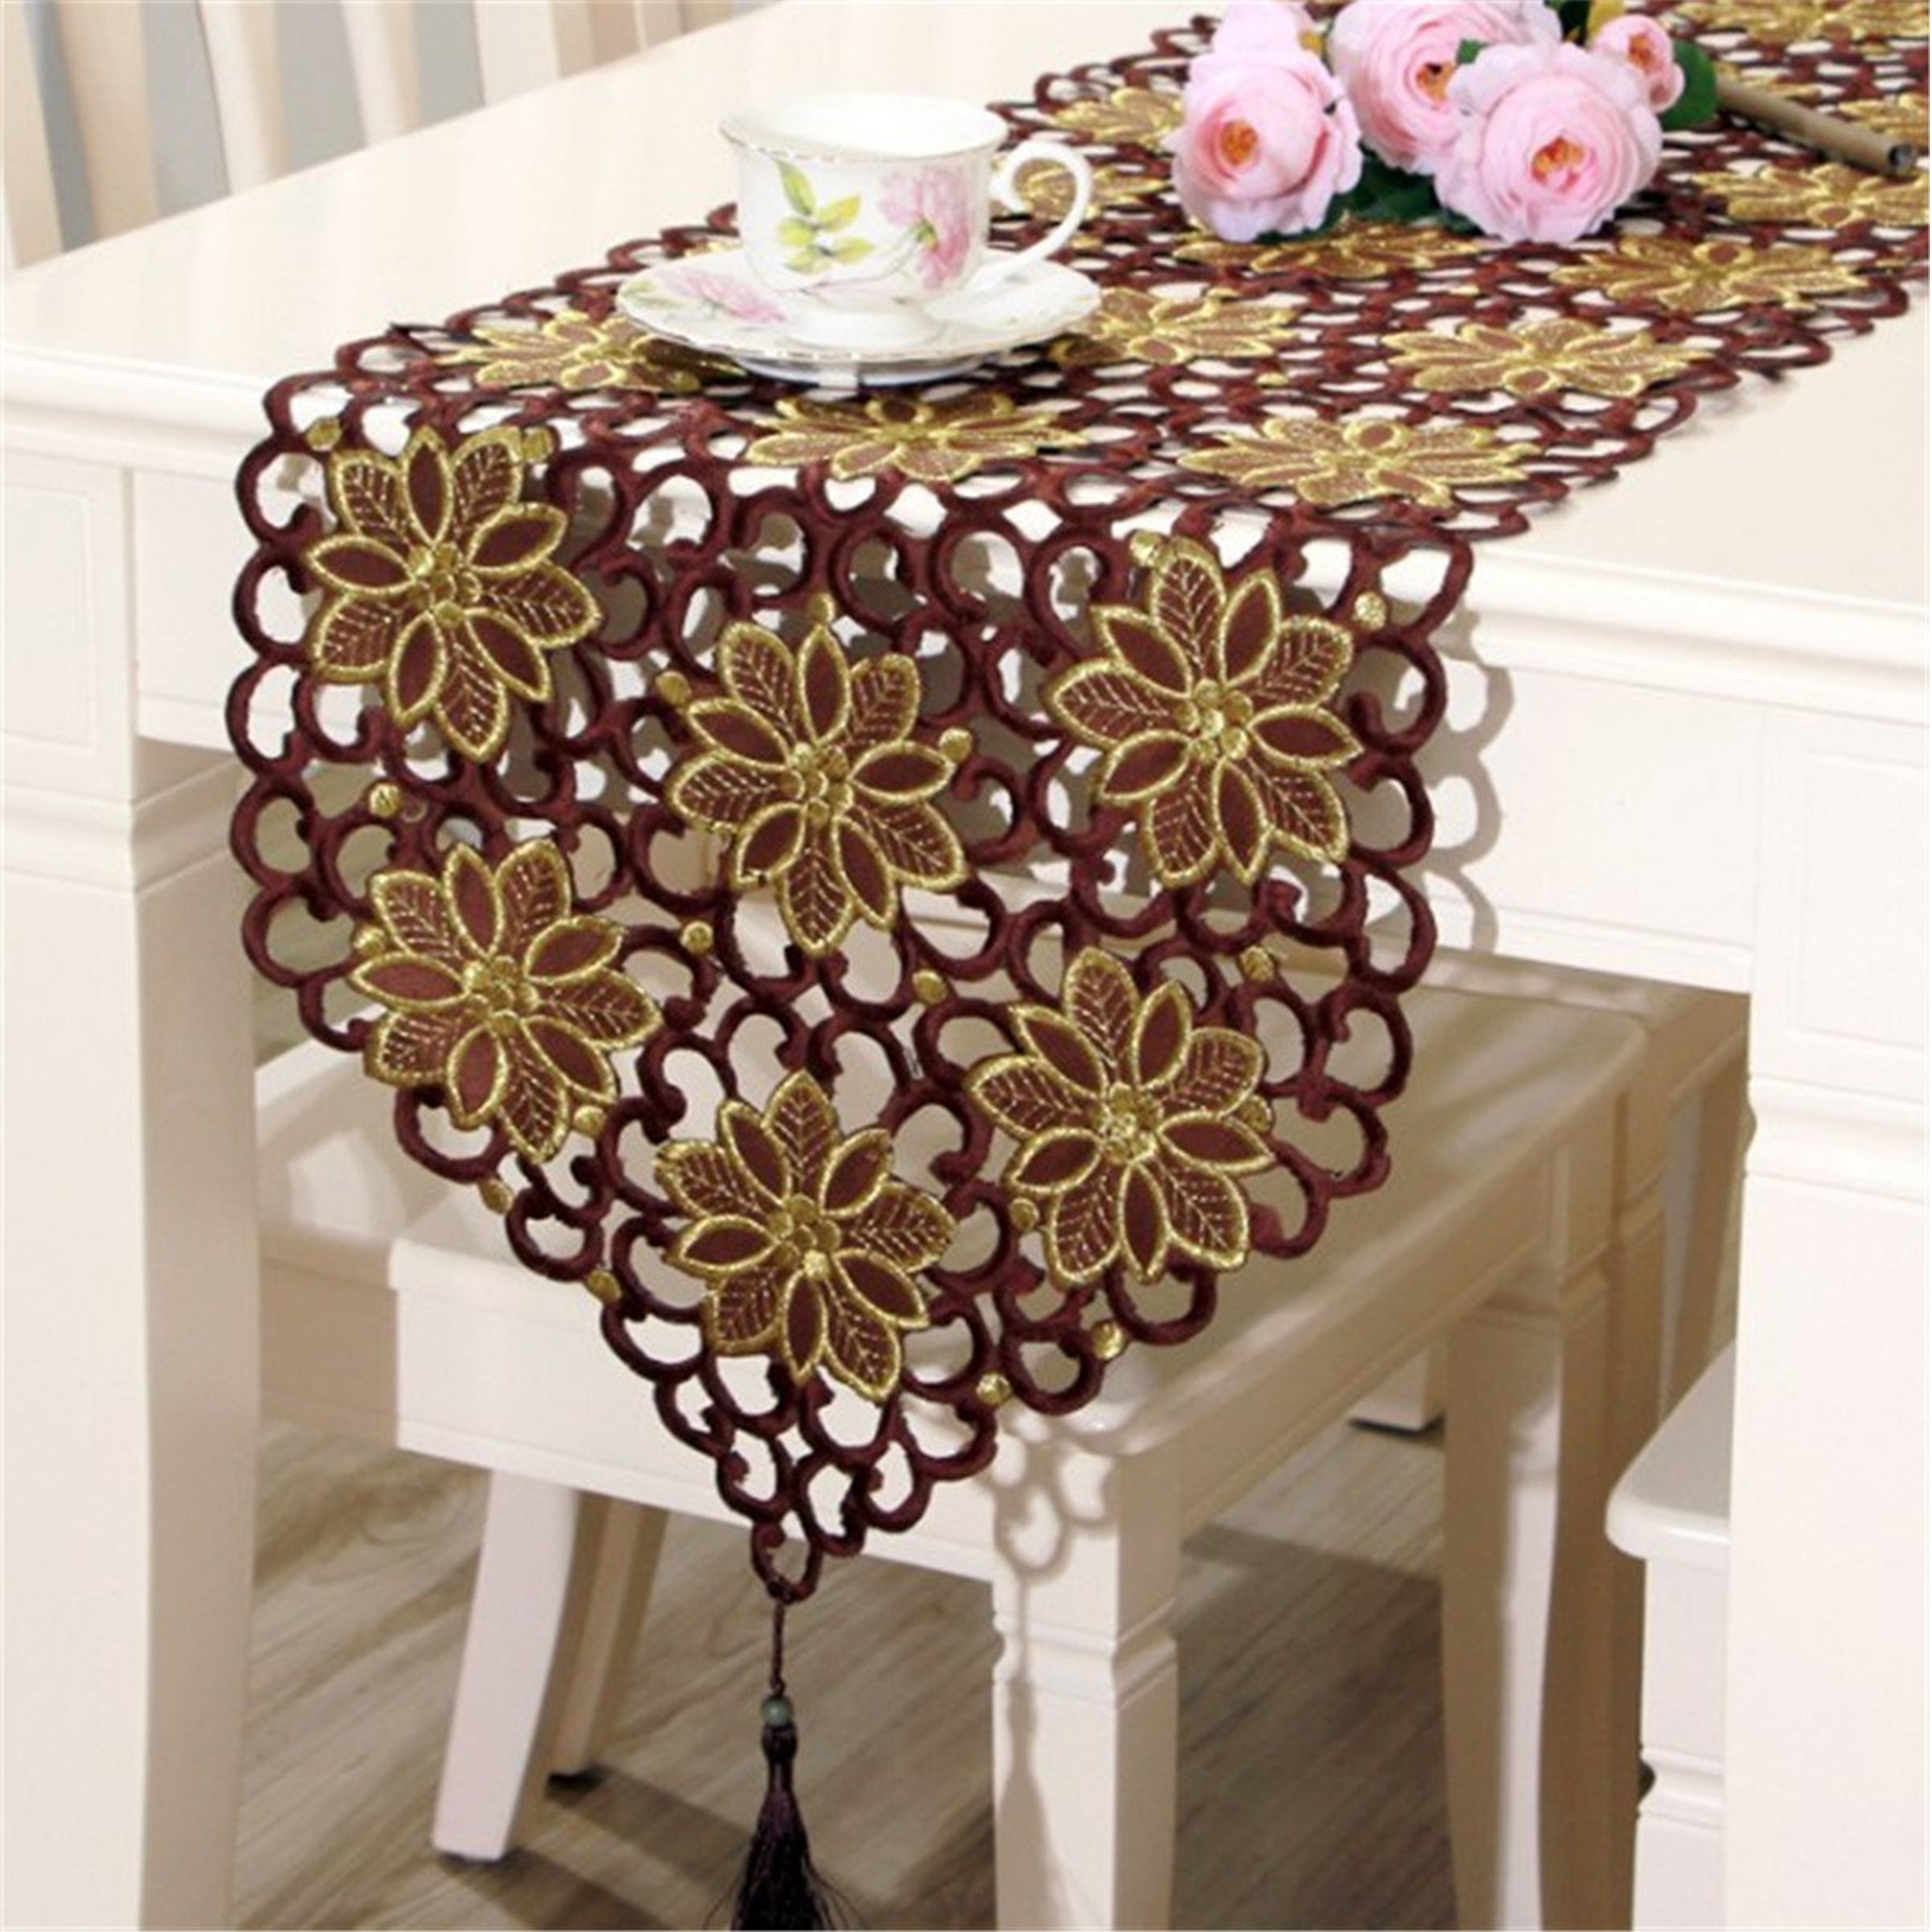 Dining Room Table Runner: Vintage Table Runner And Dresser Scarves Dining Room Table